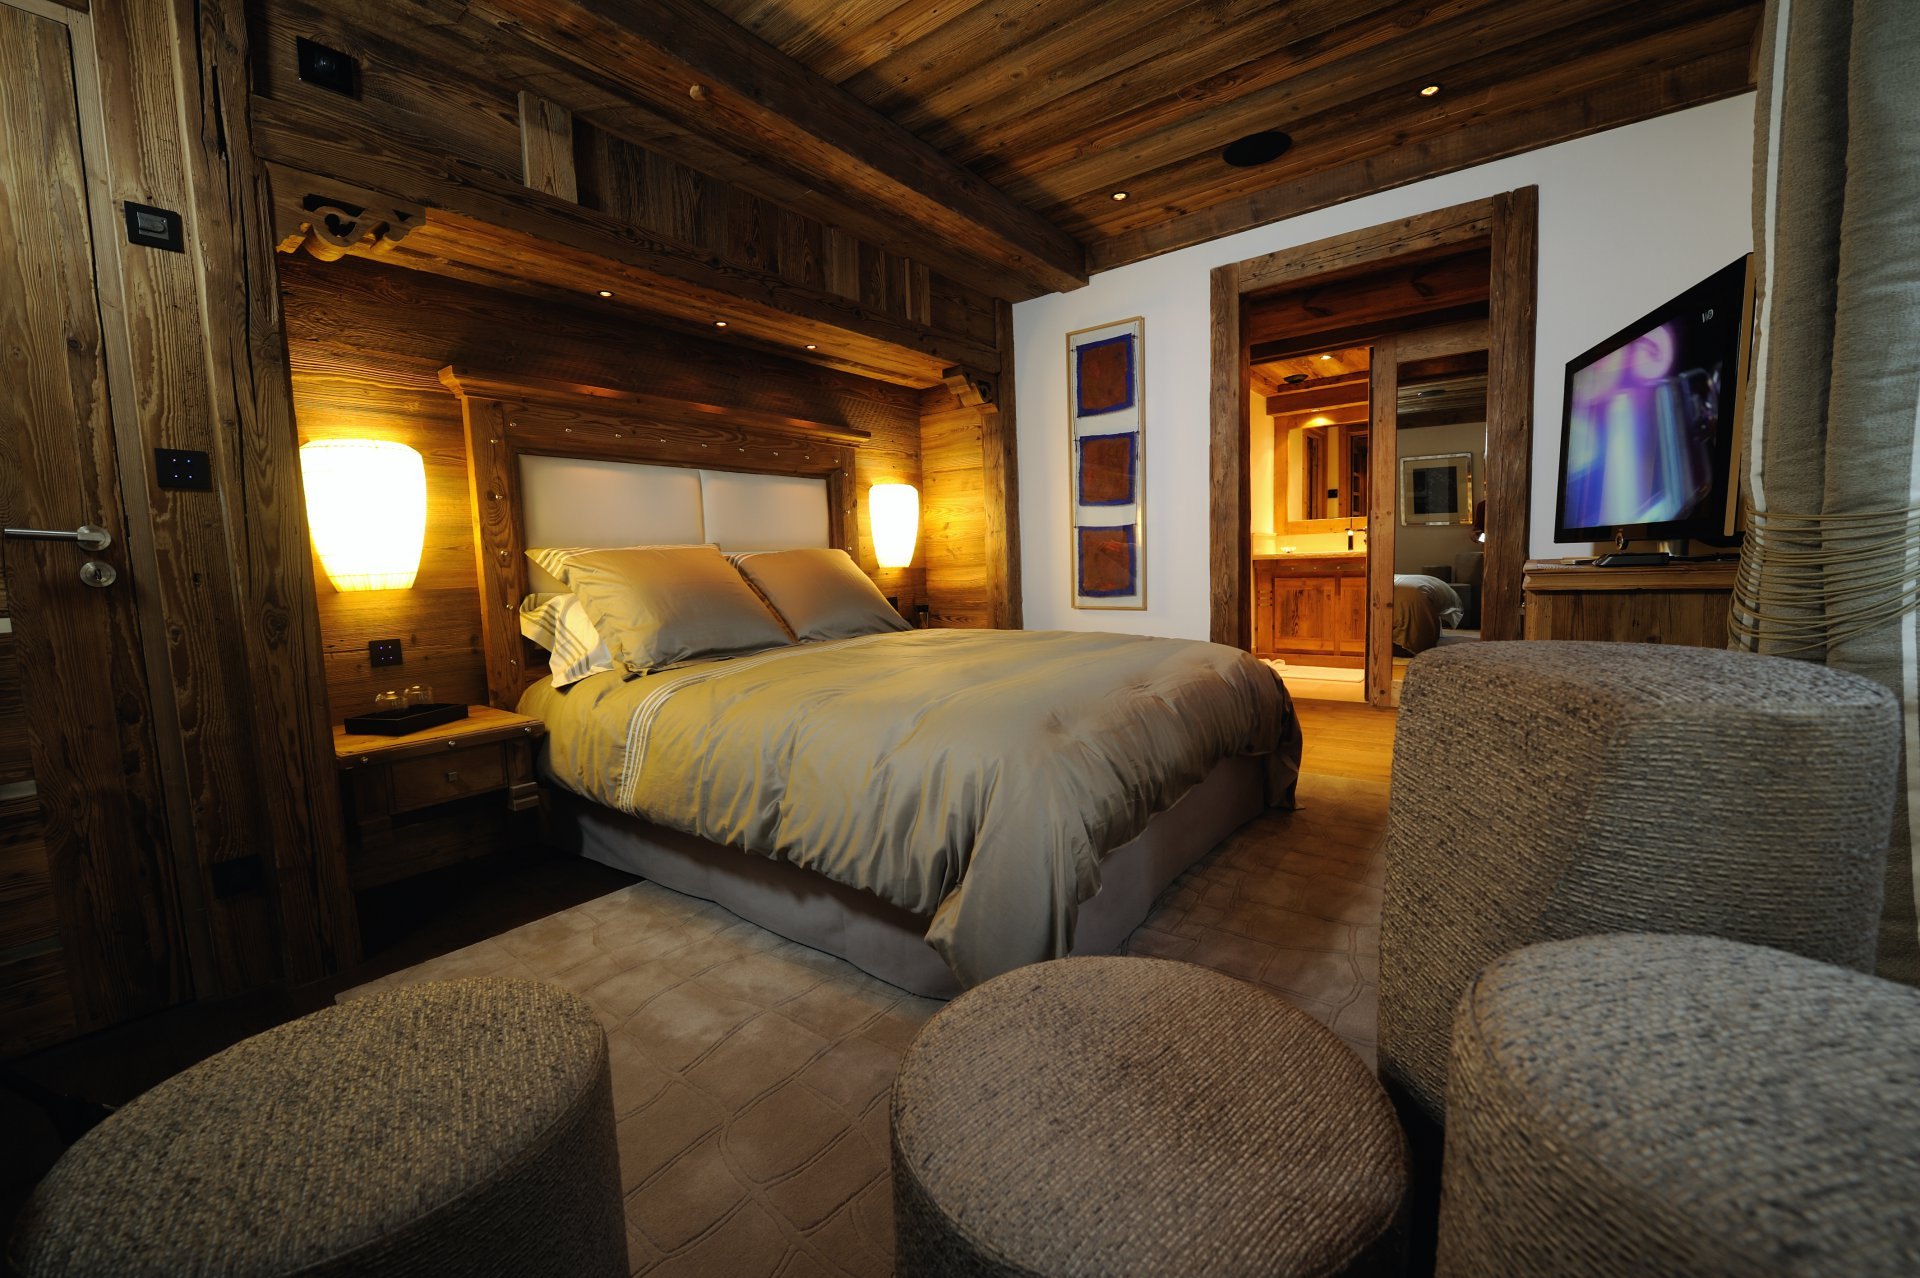 ART Chalet Courchevel 1850